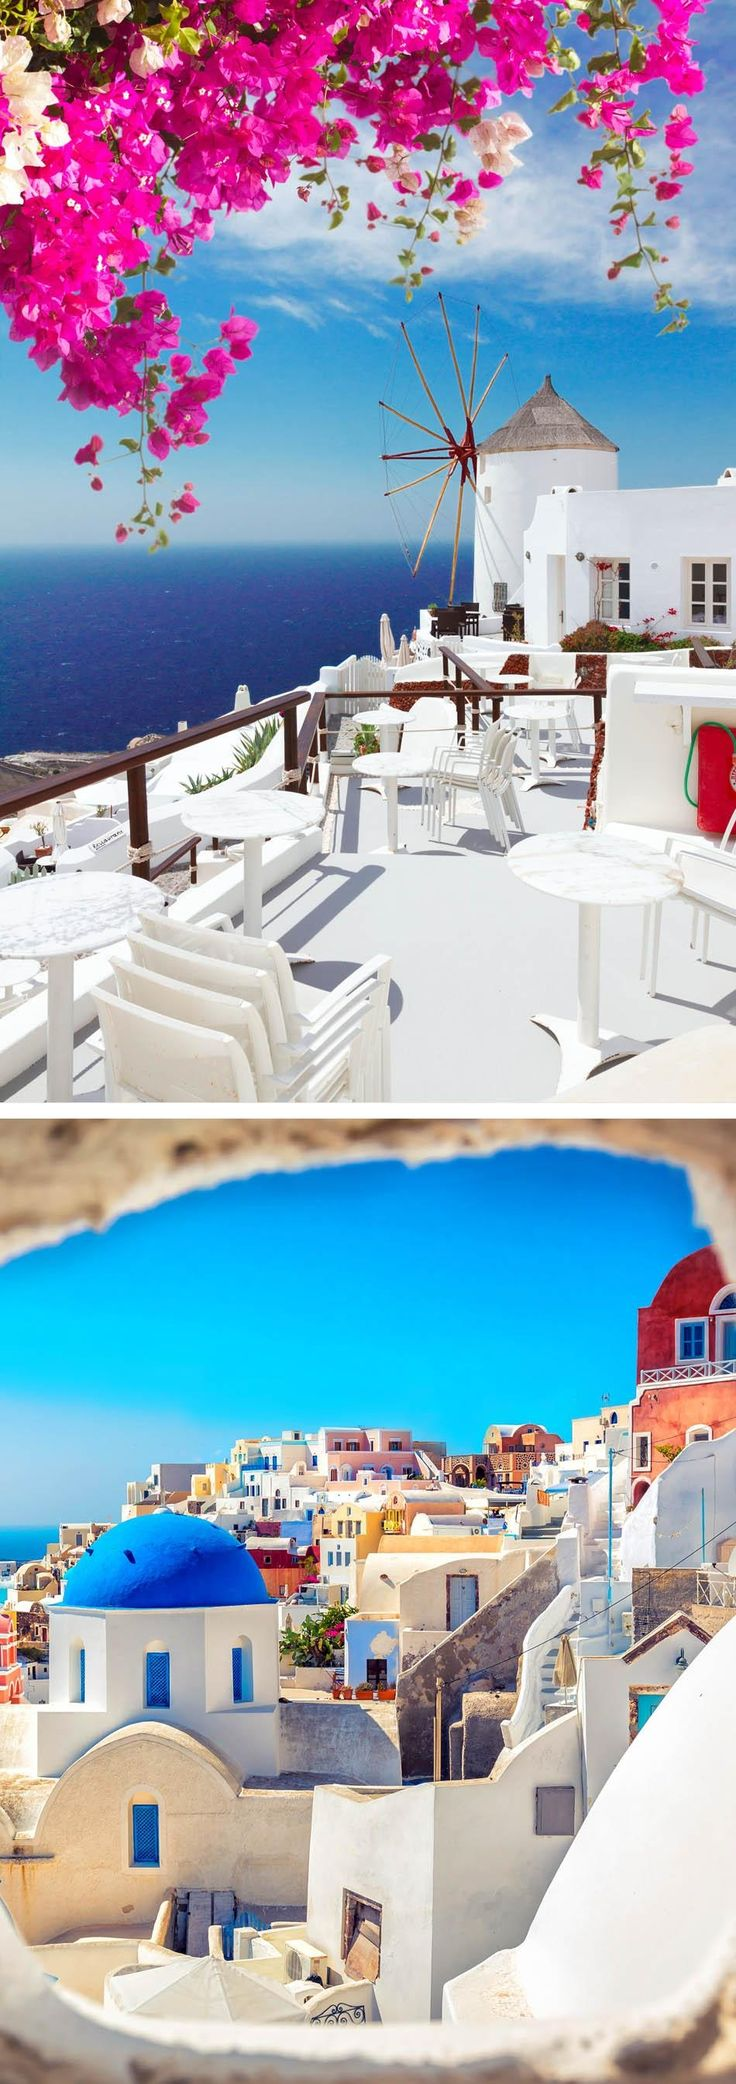 Best 25 Greek Garden Ideas On Pinterest: 25+ Best Ideas About Most Beautiful Greek Island On